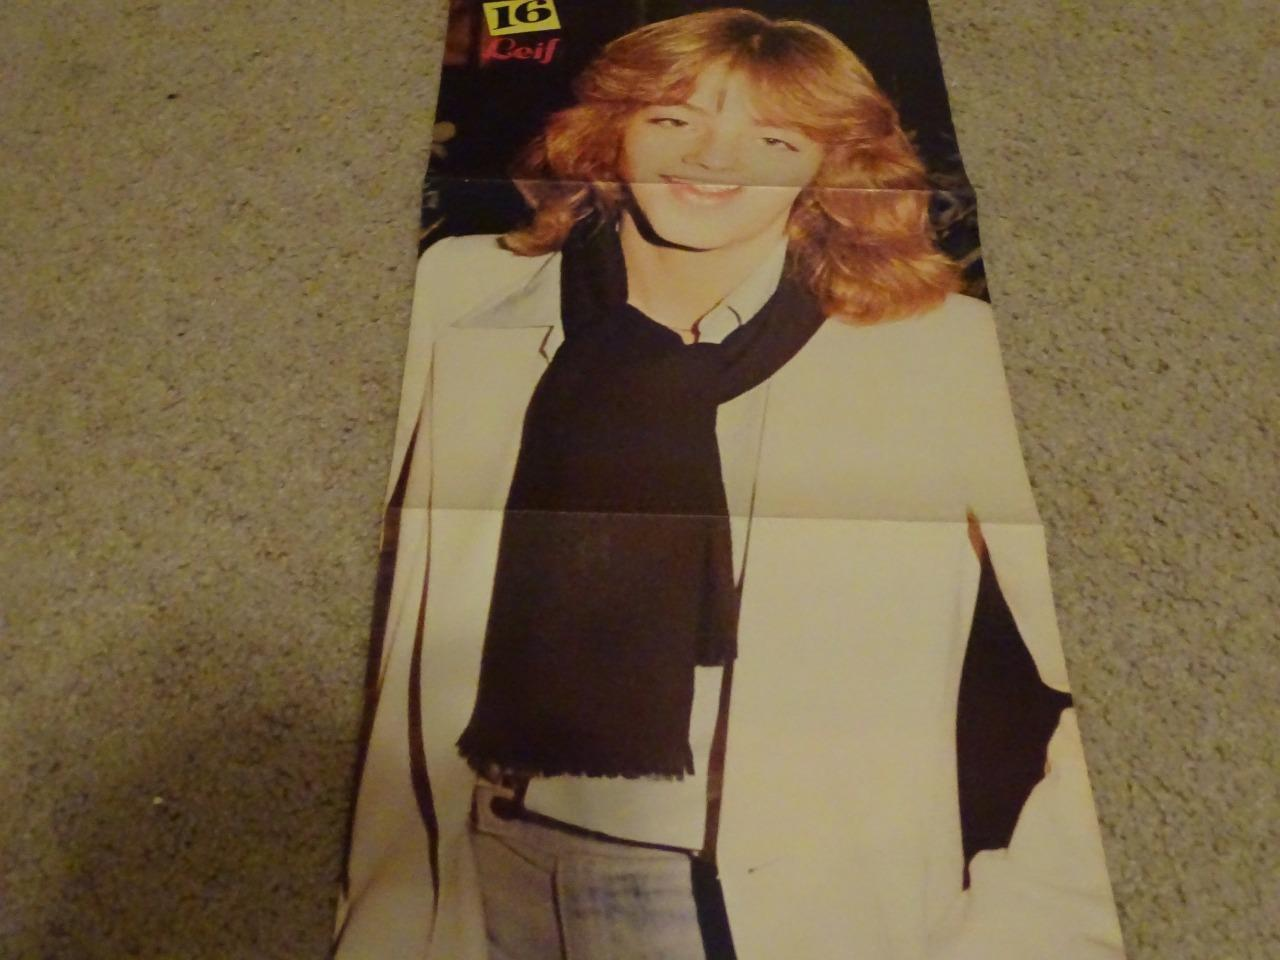 Leif Garrett Shaun Cassidy teen magazine poster clipping Tiger Beat Young Boy